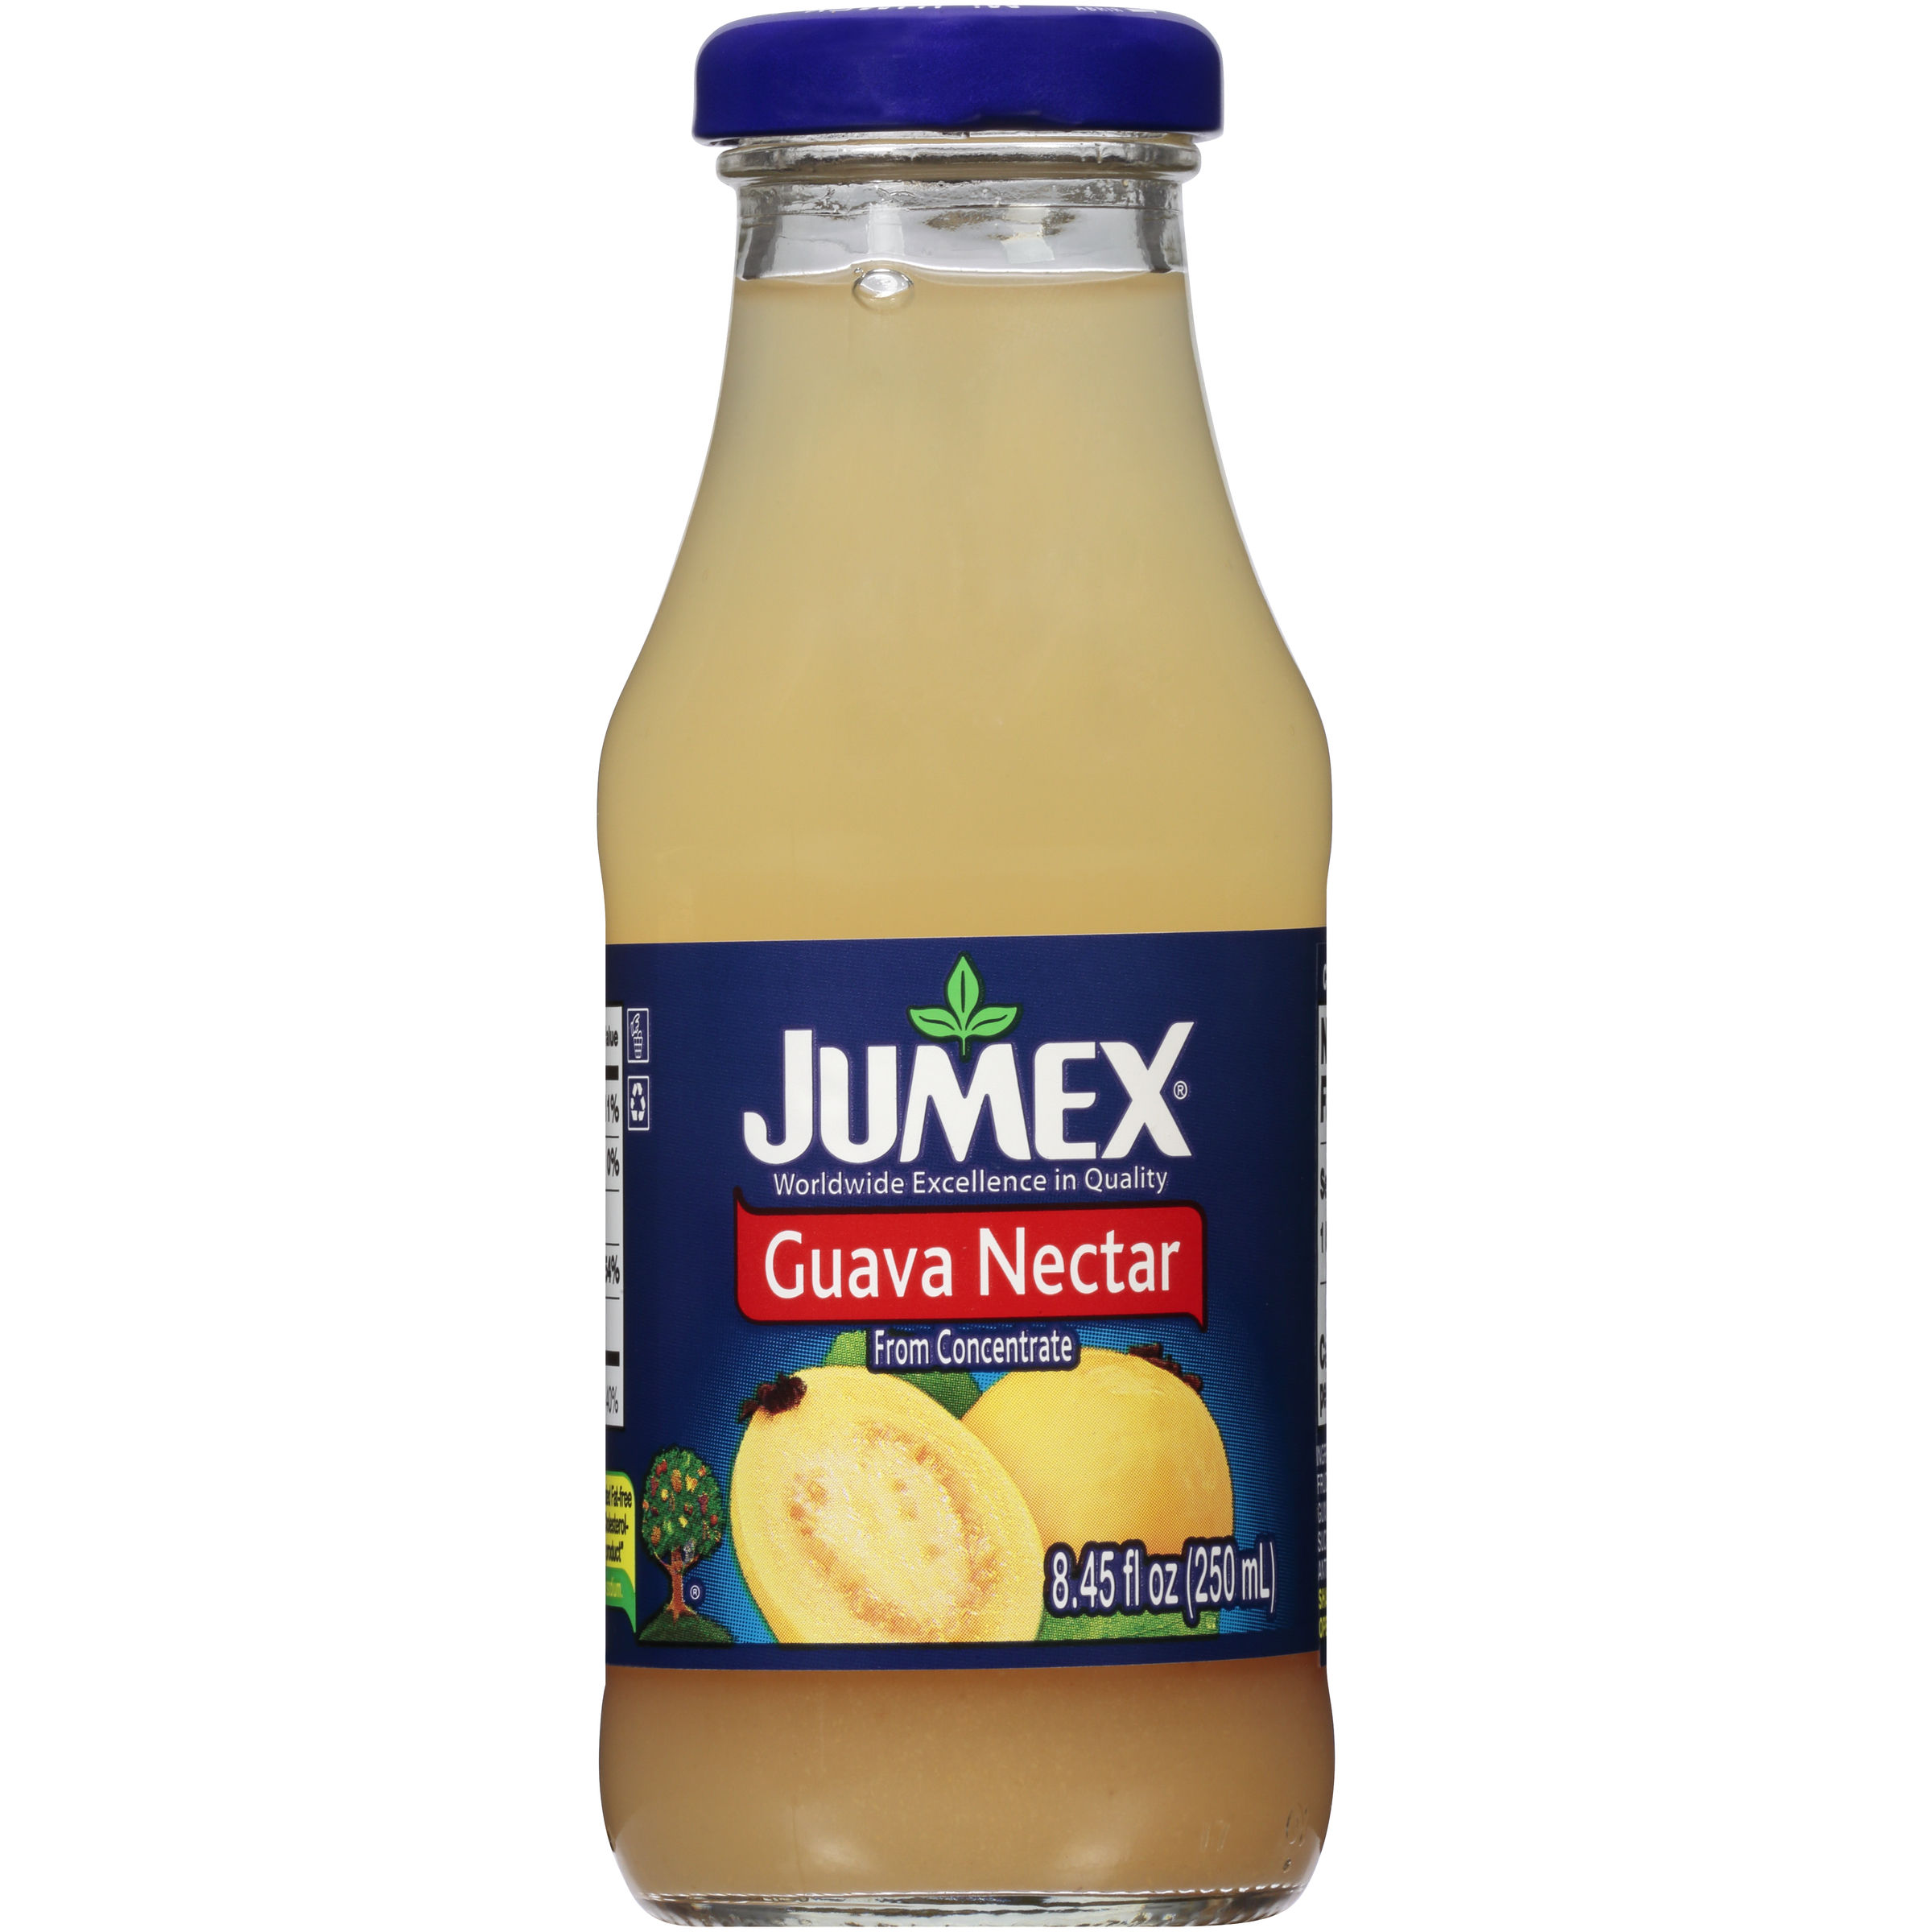 Jumex Juice - Guava Nectar - 8.45 fl oz (250ml)